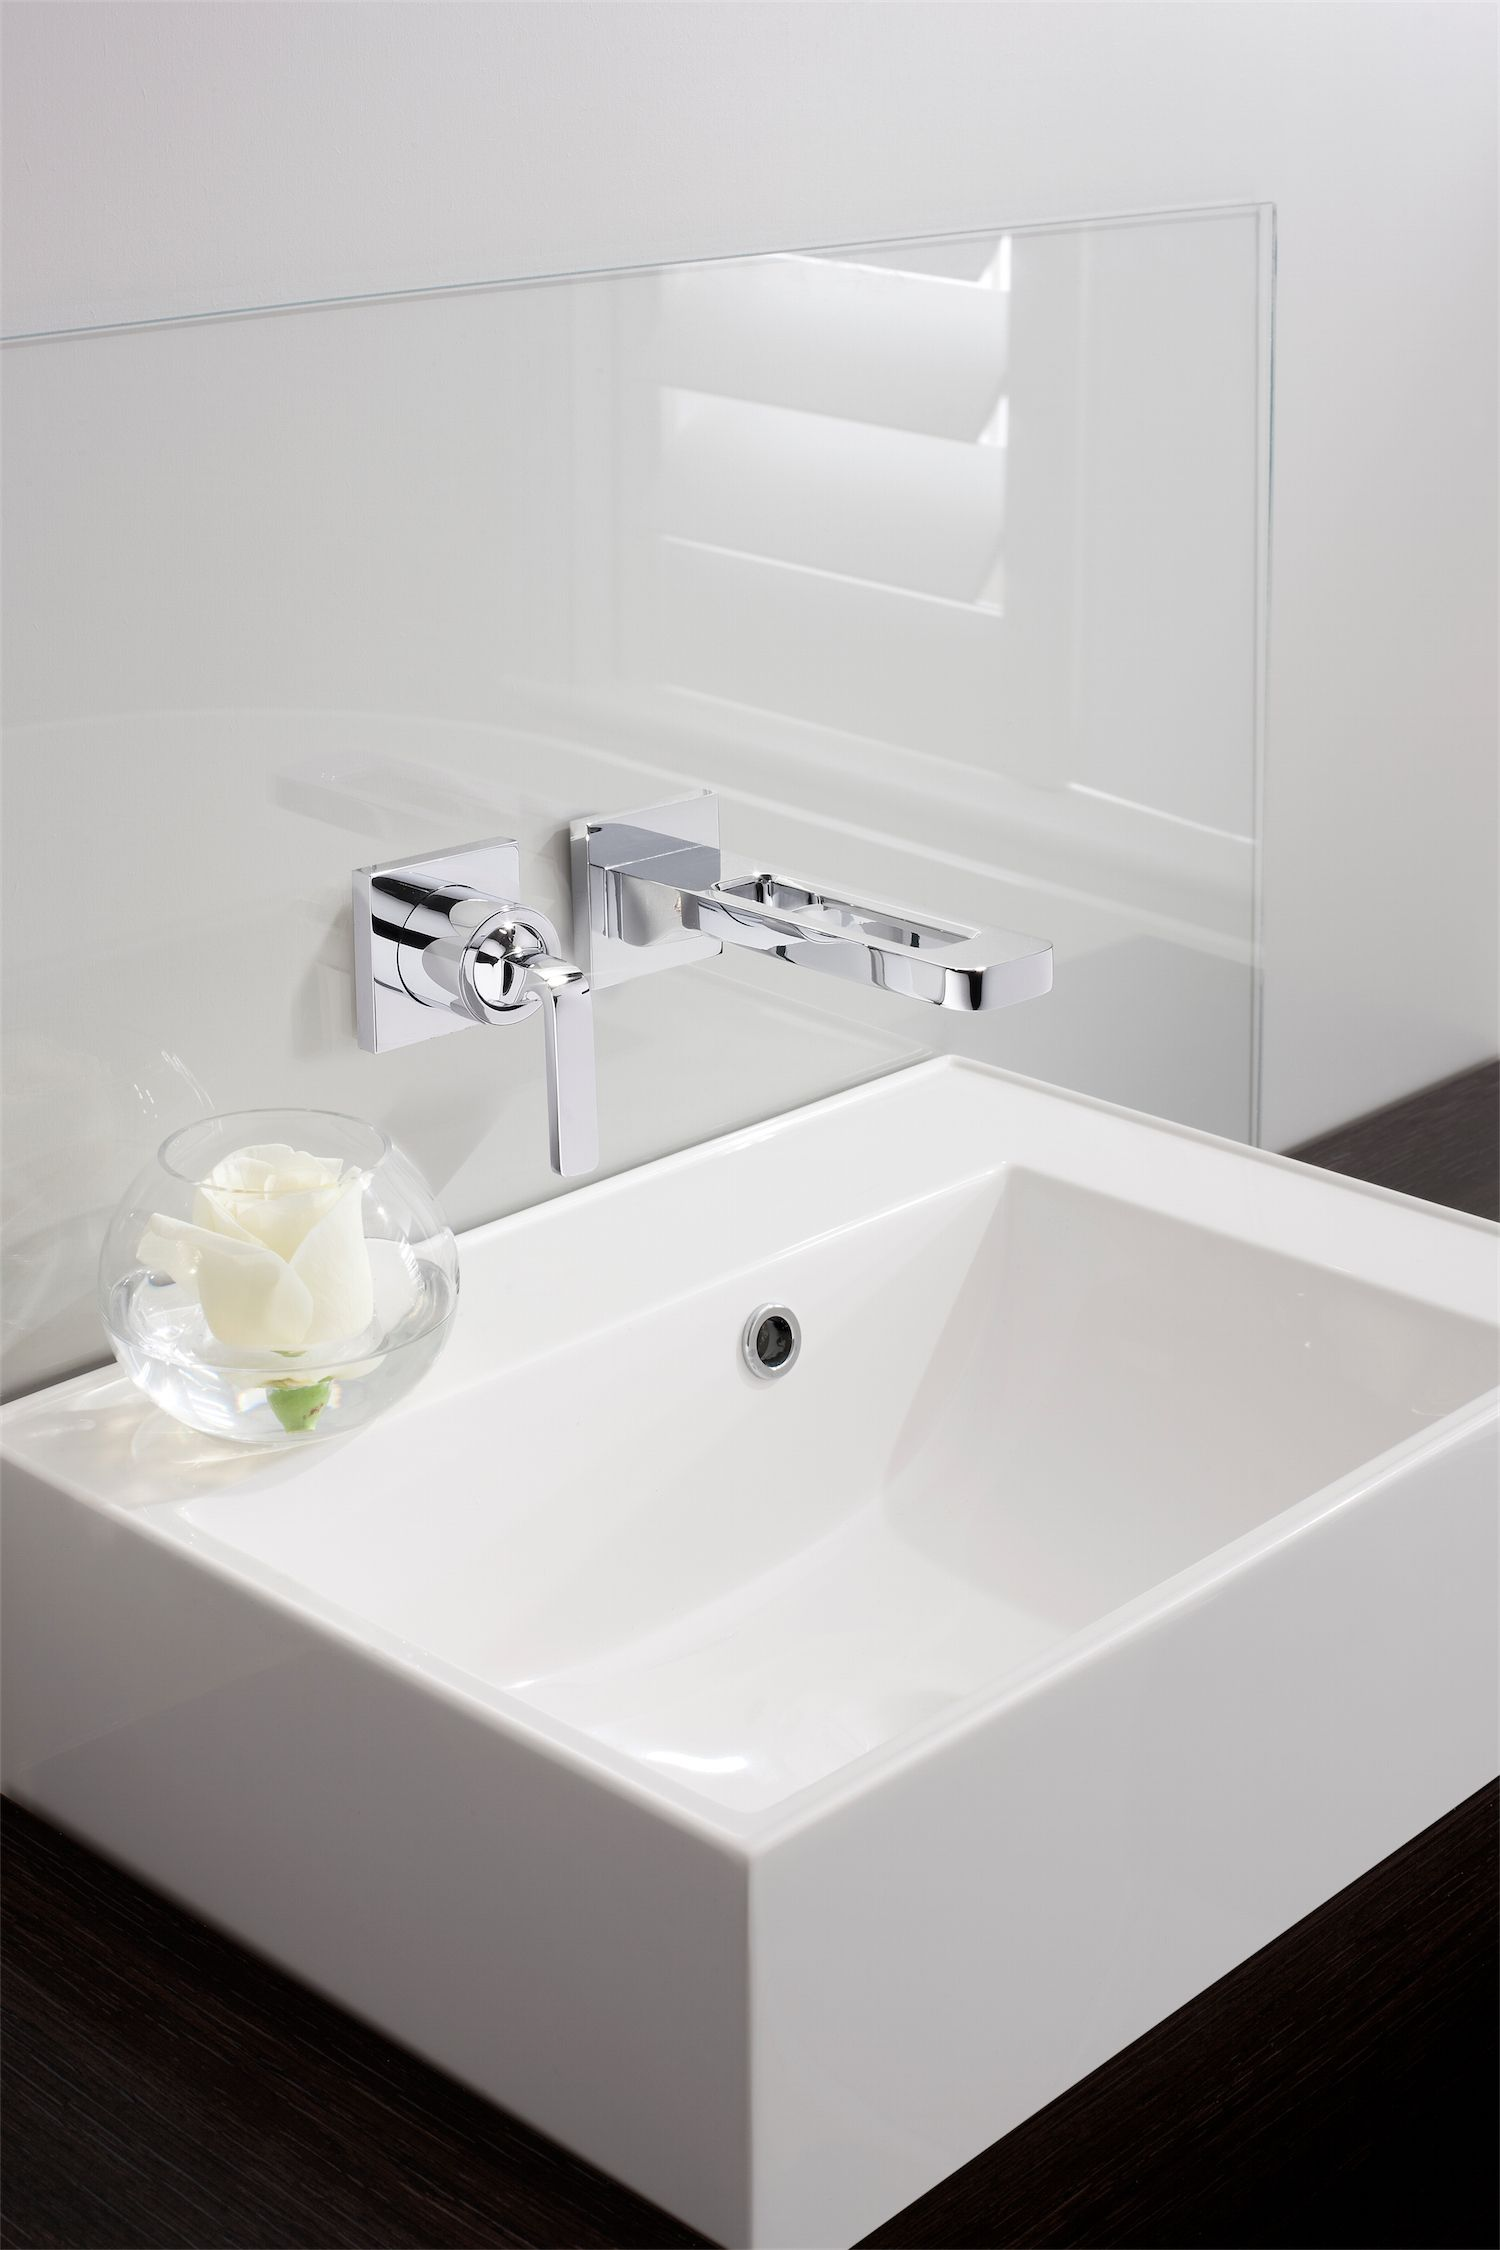 KH Zero 1 Wall Mounted Basin 2 Hole Bathroom Tap Set from Kelly Hoppen at Crosswater http://www.crosswater.co.uk/product/kelly-hoppen-mbe-bathroom-collection/basin-2-hole-set-kh01-120wnc/